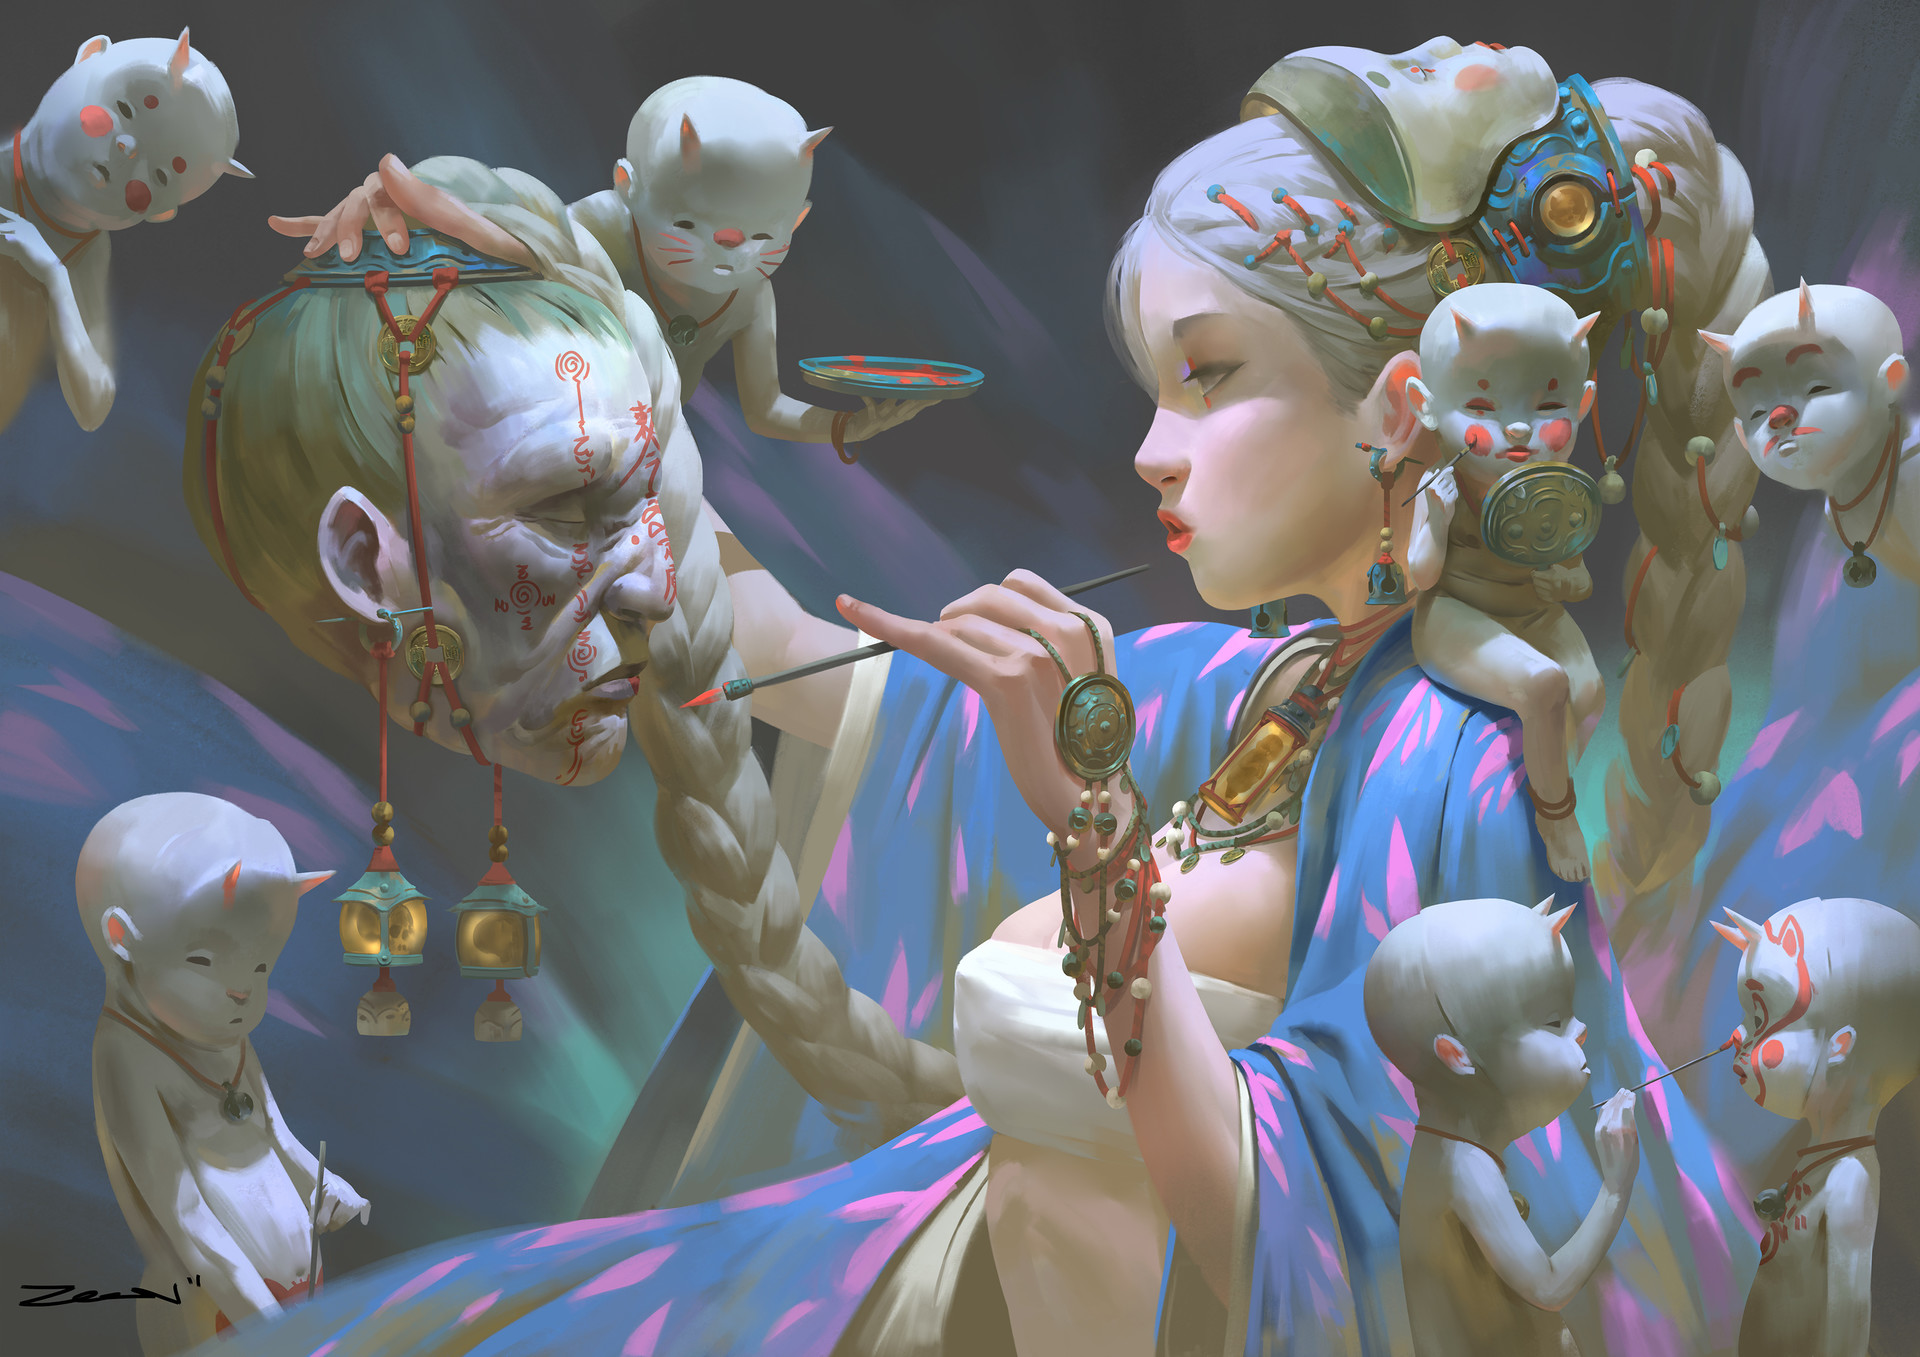 Les incroyables digital paintings du malaisien Zeen Chin